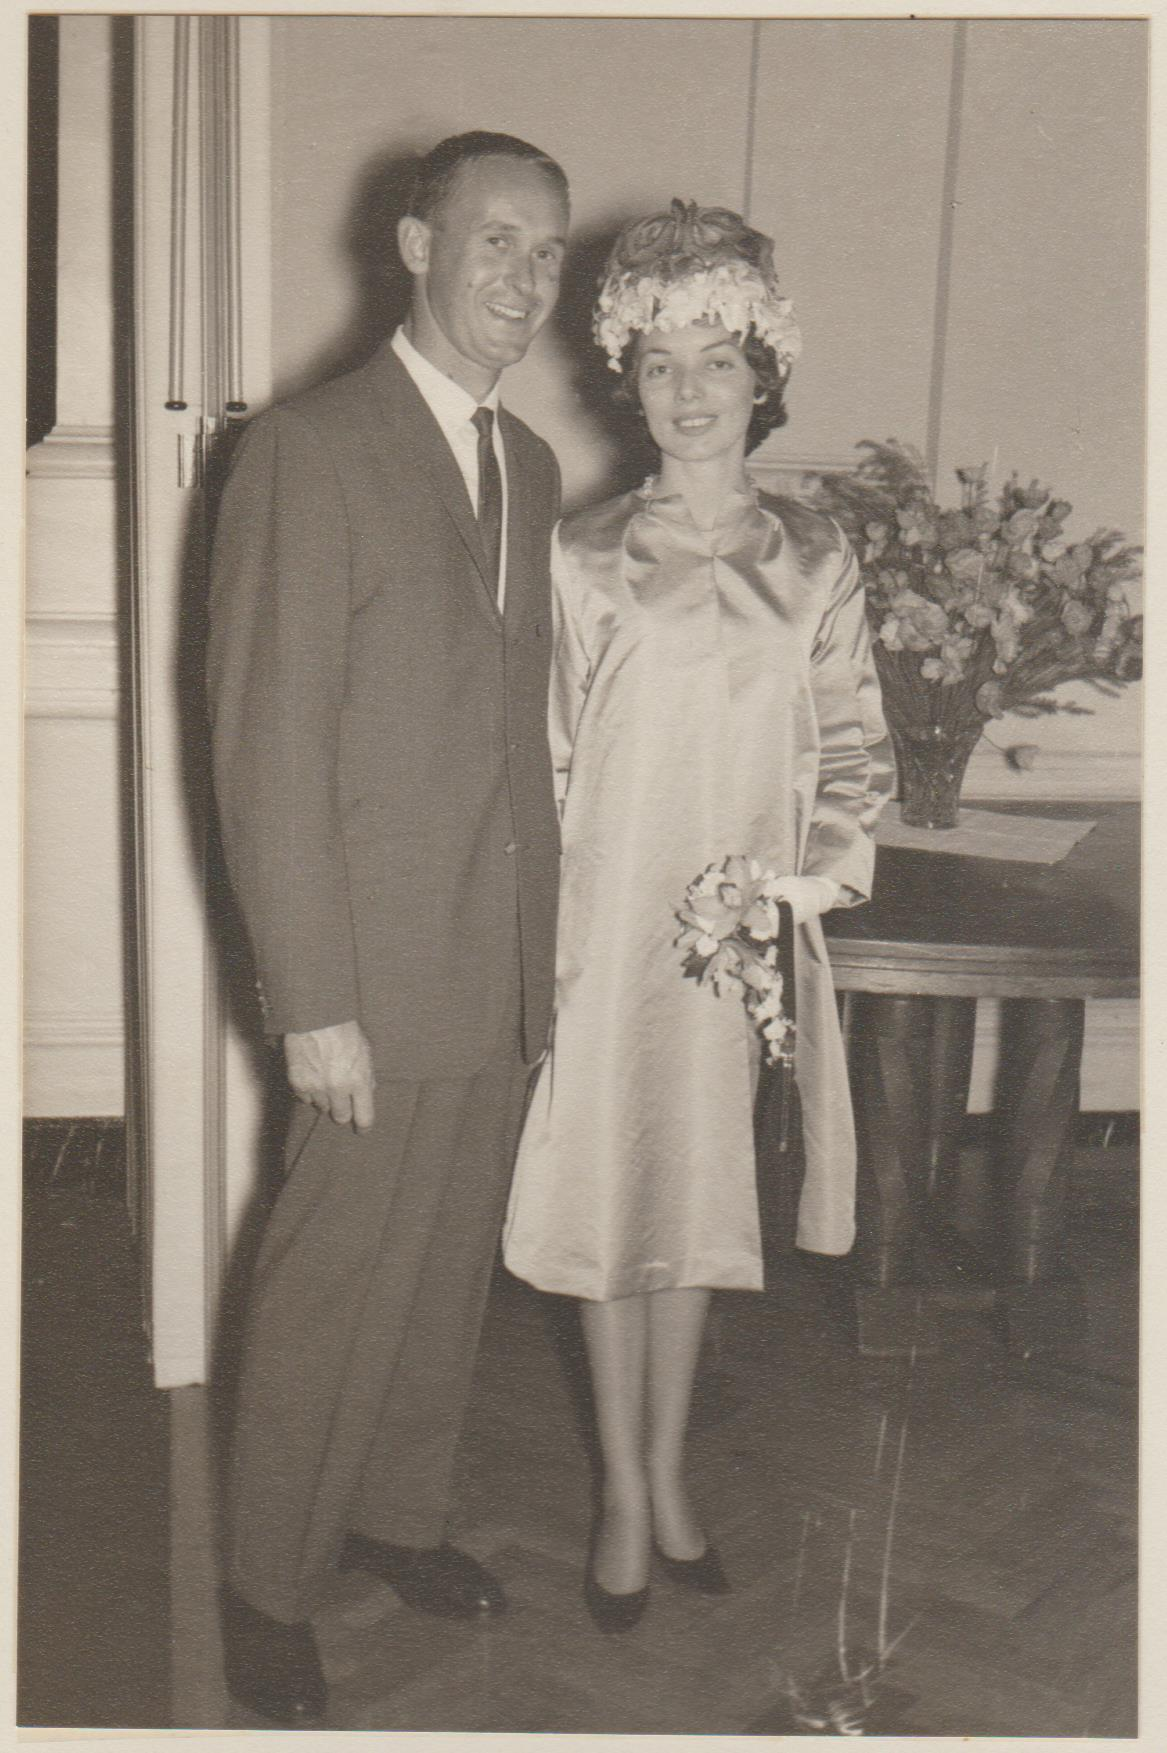 My wife and I were married in 1962 at Saint Peters Anglican Church in Victoria Park in 1962. Victoria Park was within the City of Perth at that time. The reception was in the Palace Hotel Perth. Image courtesy of Llewellyn David.